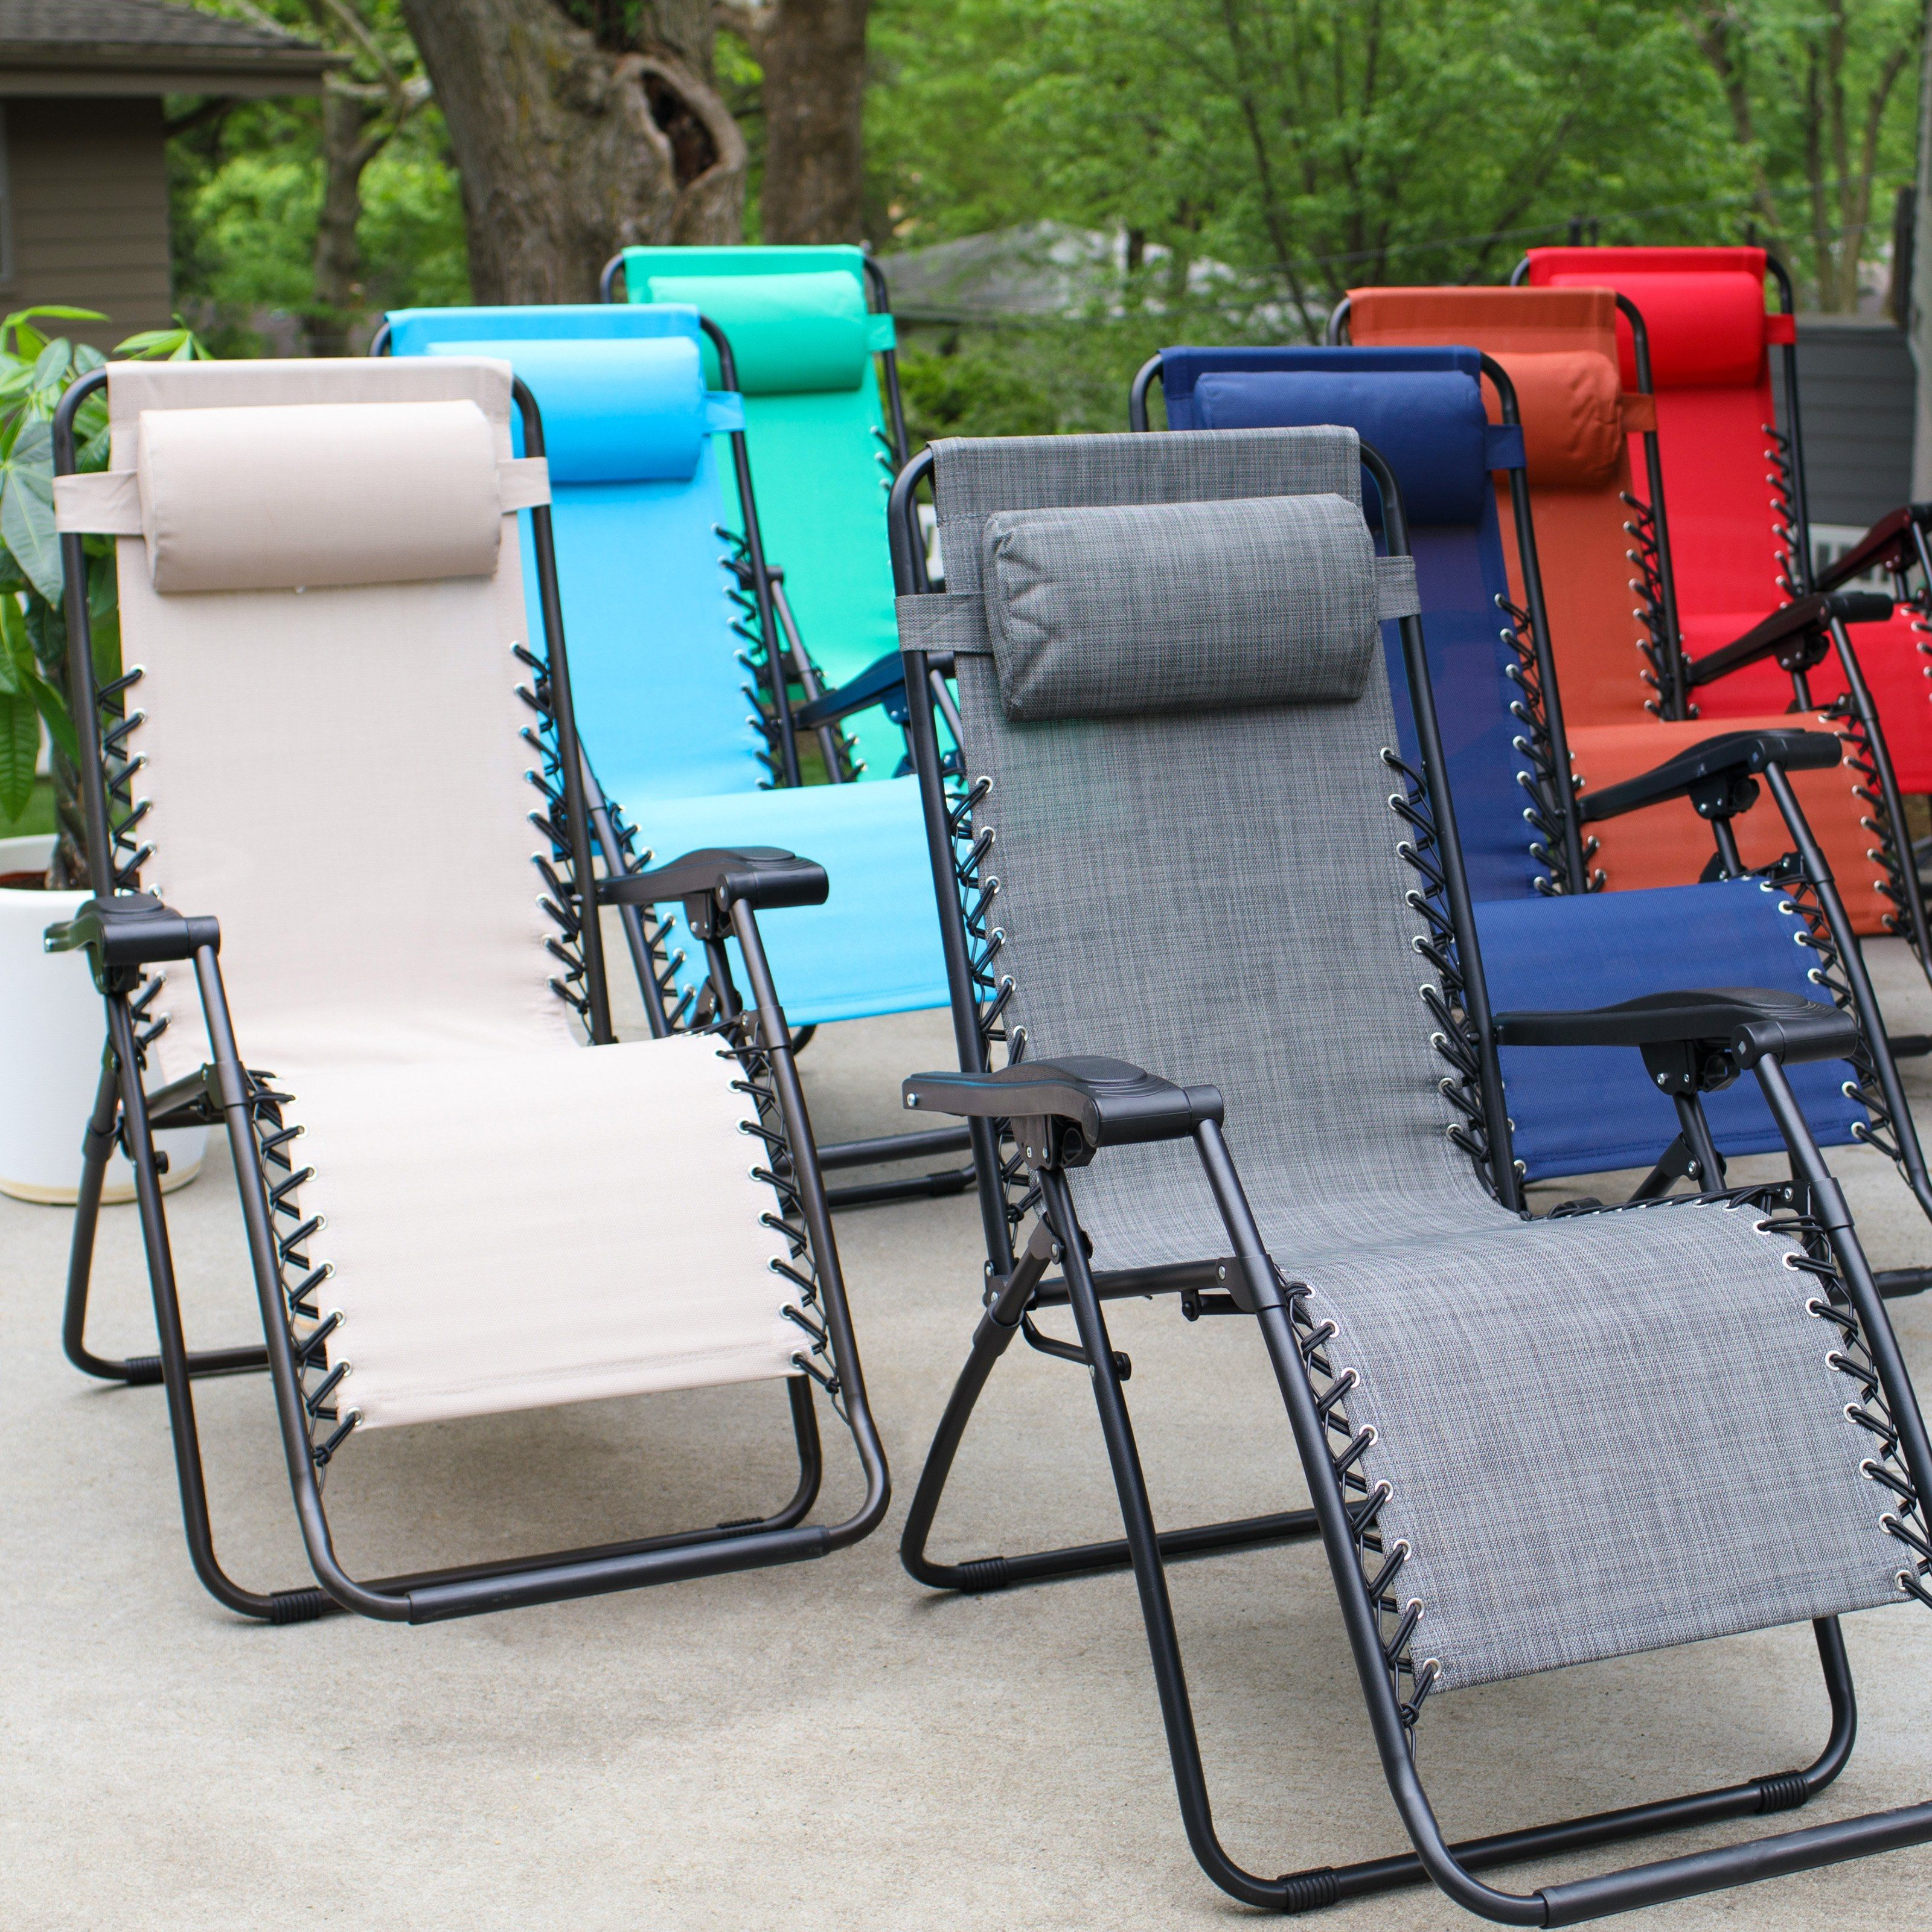 Colorful Folding Lawn Chairs